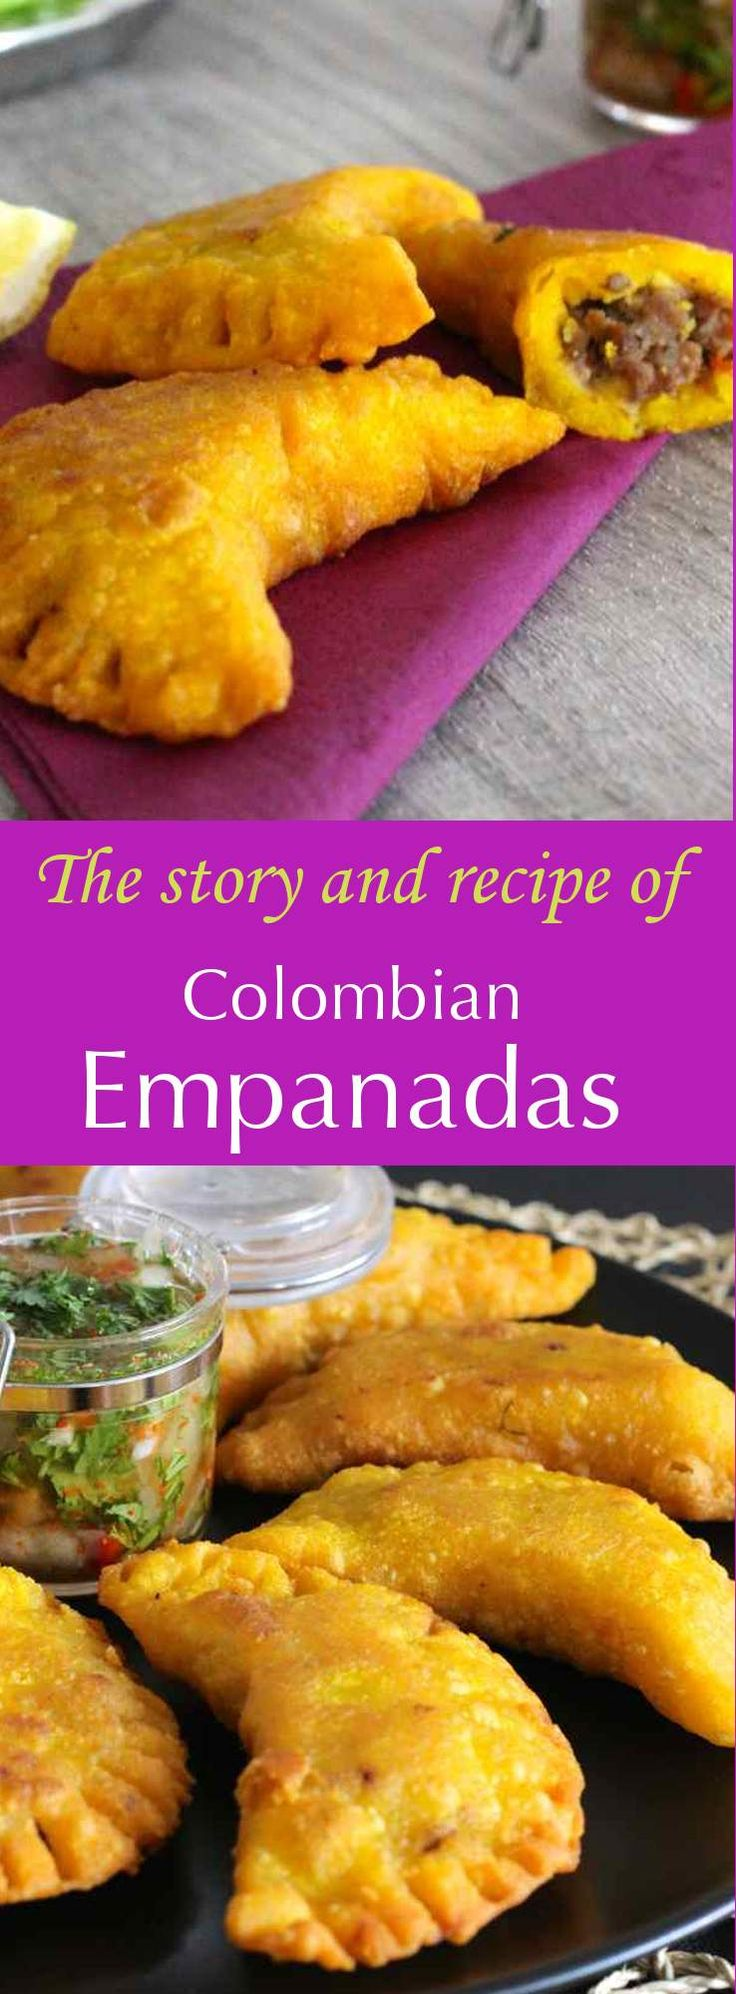 Empanadas are turnovers filled with Spanish and South American origin that are stuffed differently in different countries and regions. #196flavos